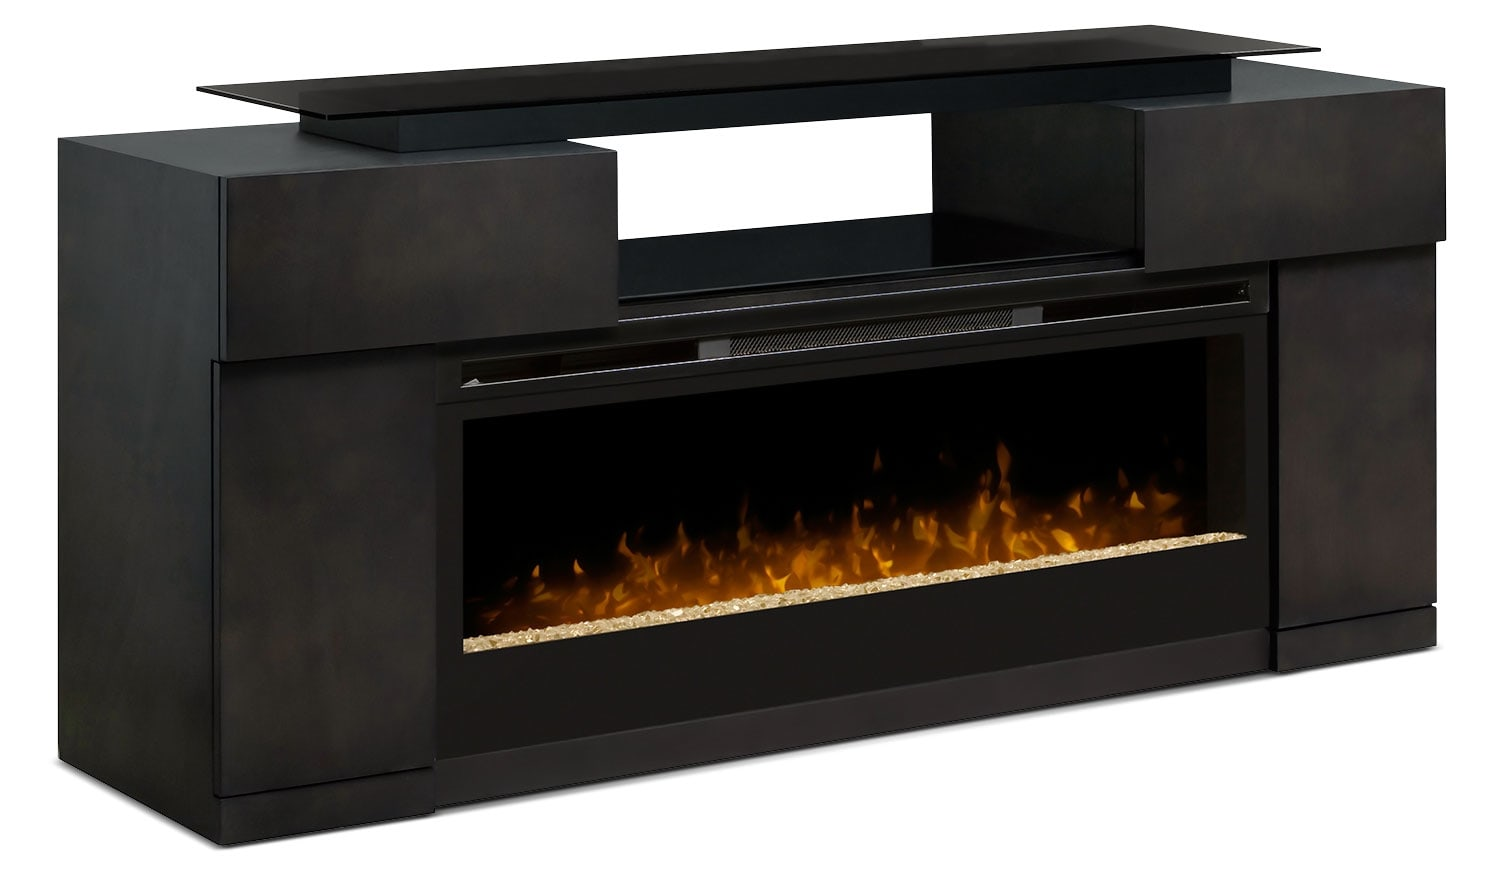 "Entertainment Furniture - Concord 73"" TV Stand with Glass Ember Firebox"